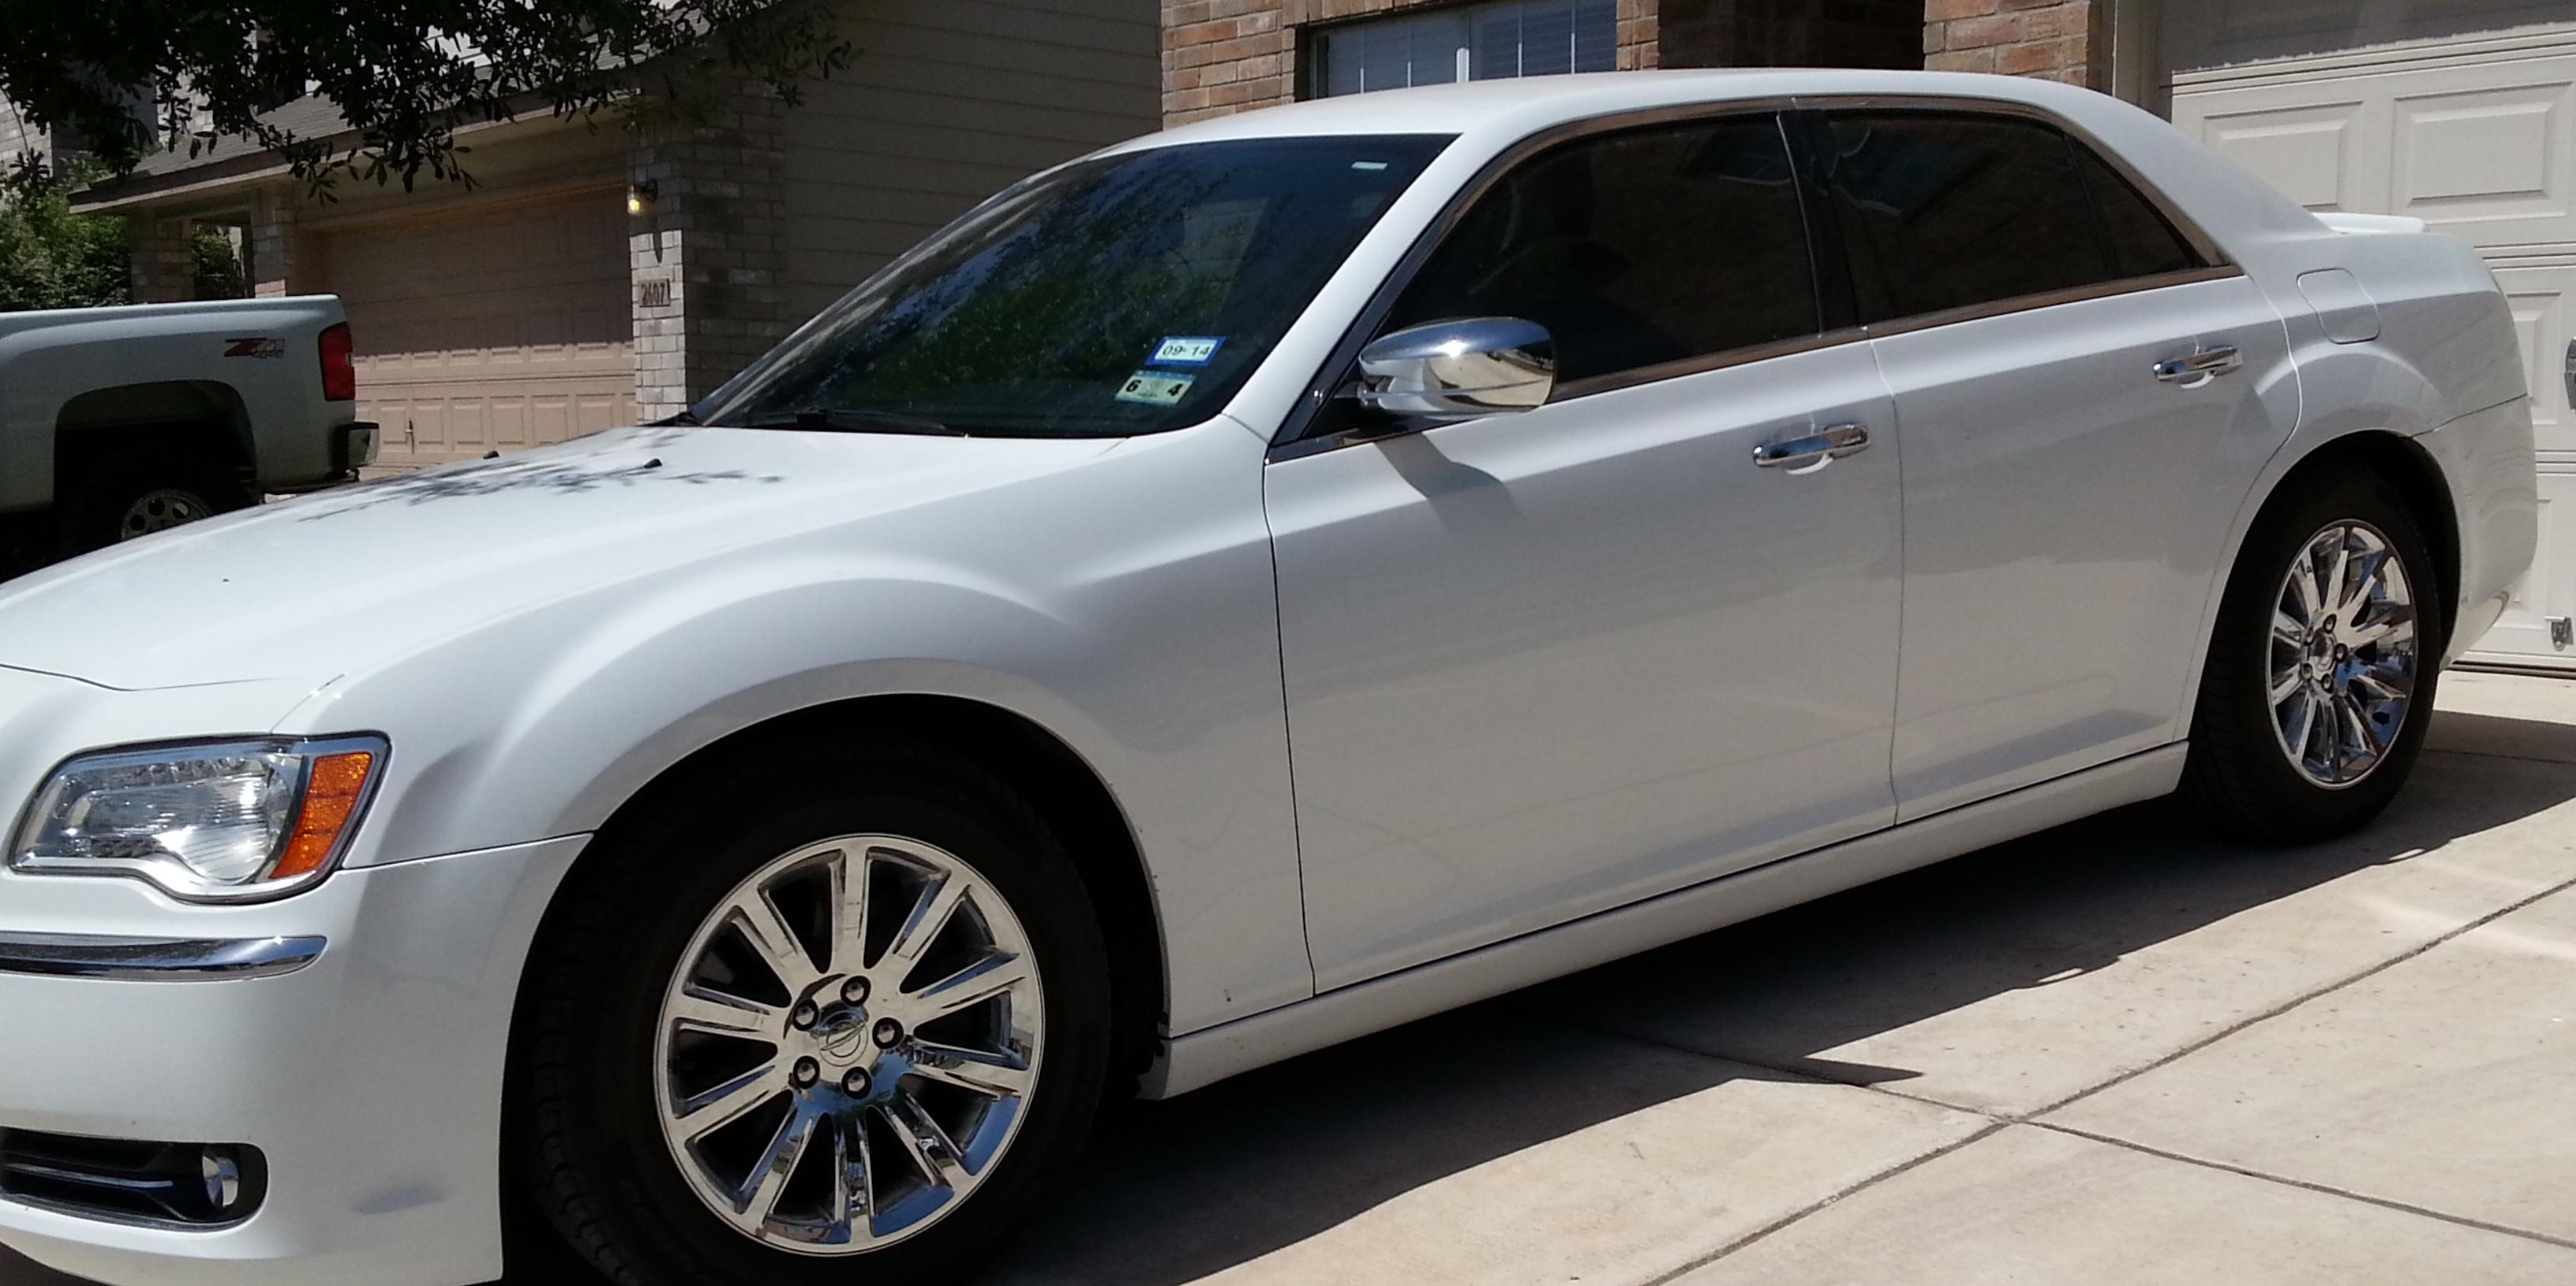 MyGansta300 2012 Chrysler 300